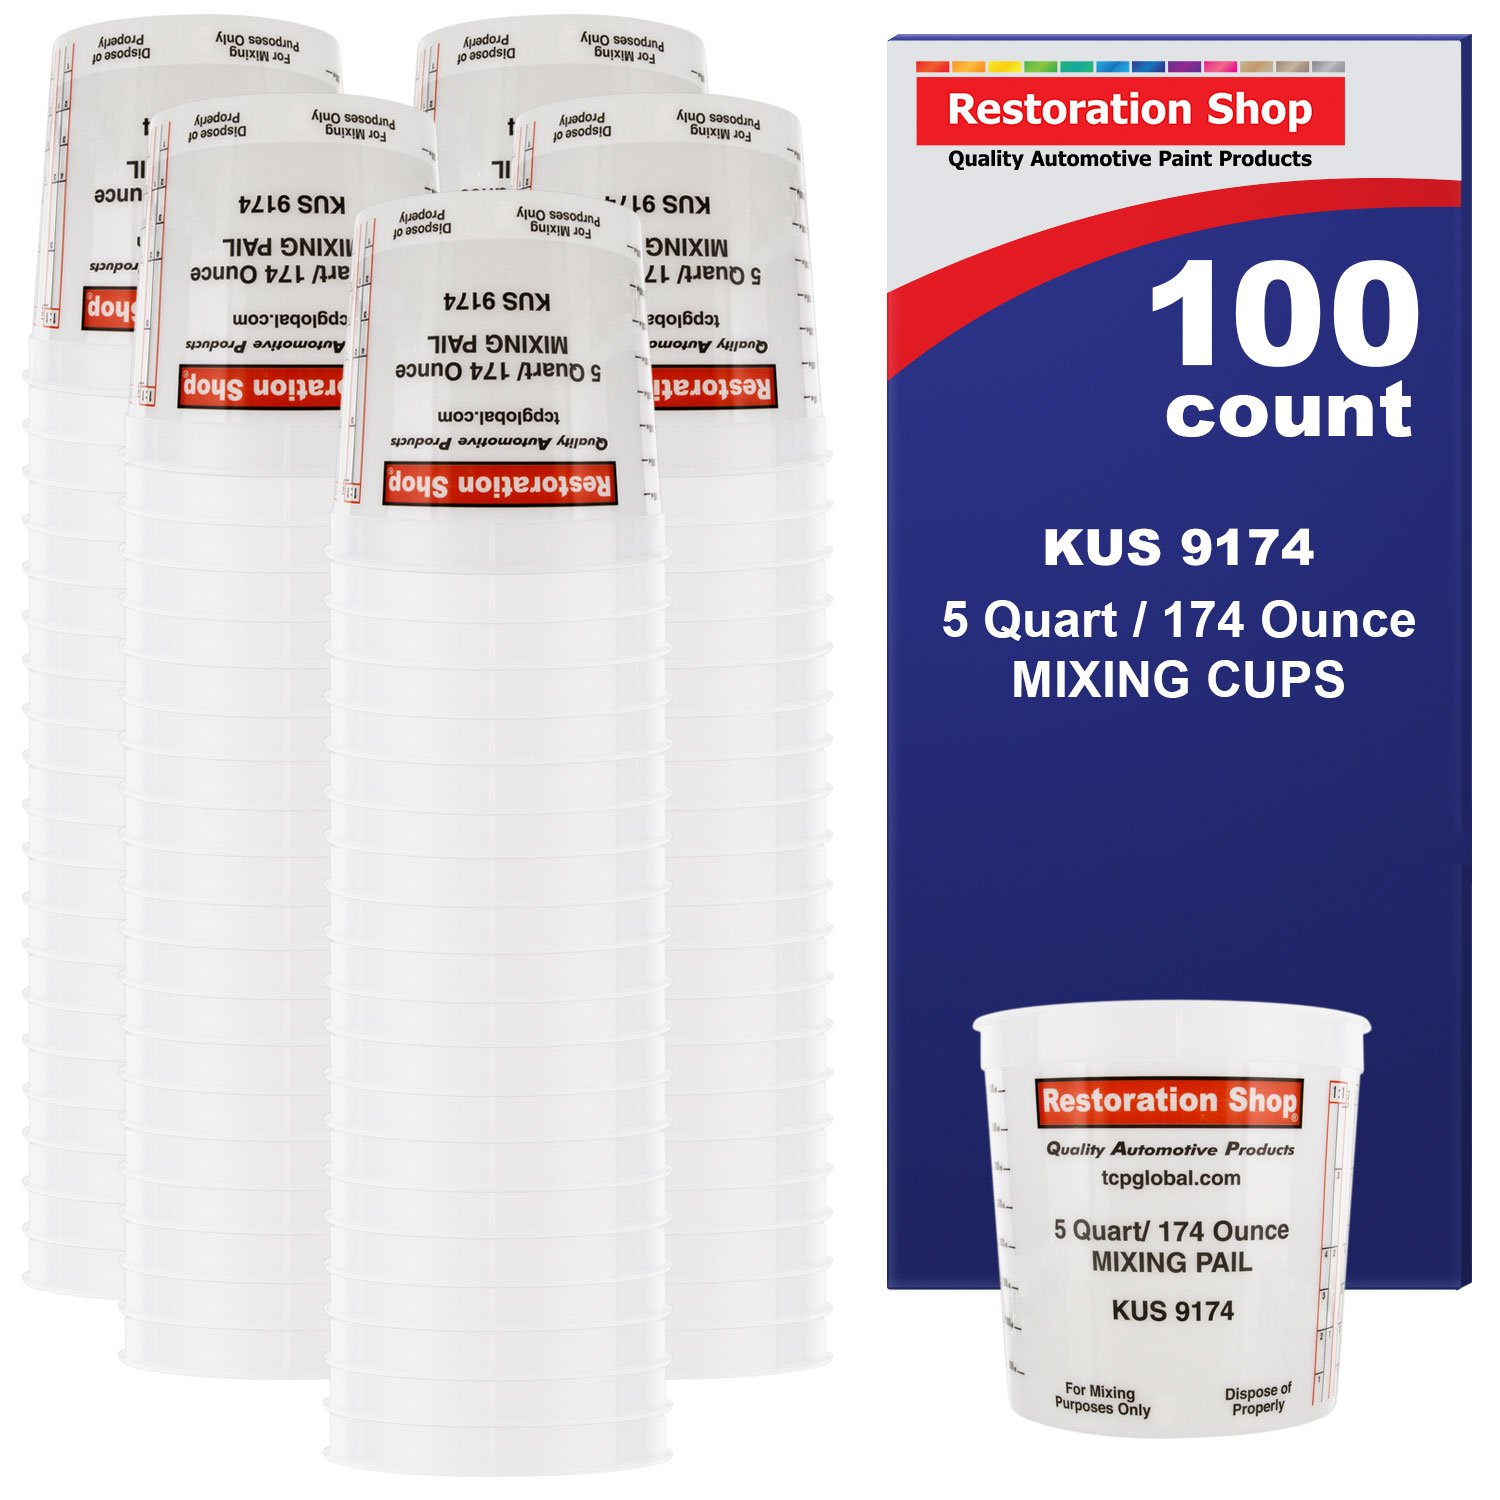 BOX of 100 each - 160 Ounce PAINT MIXING CUPS = 5 QUART Bucket) by Restoration Shop - Cups have calibrated mixing ratios on side of cup BOX of 100 Paint and Epoxy Mixing Cups